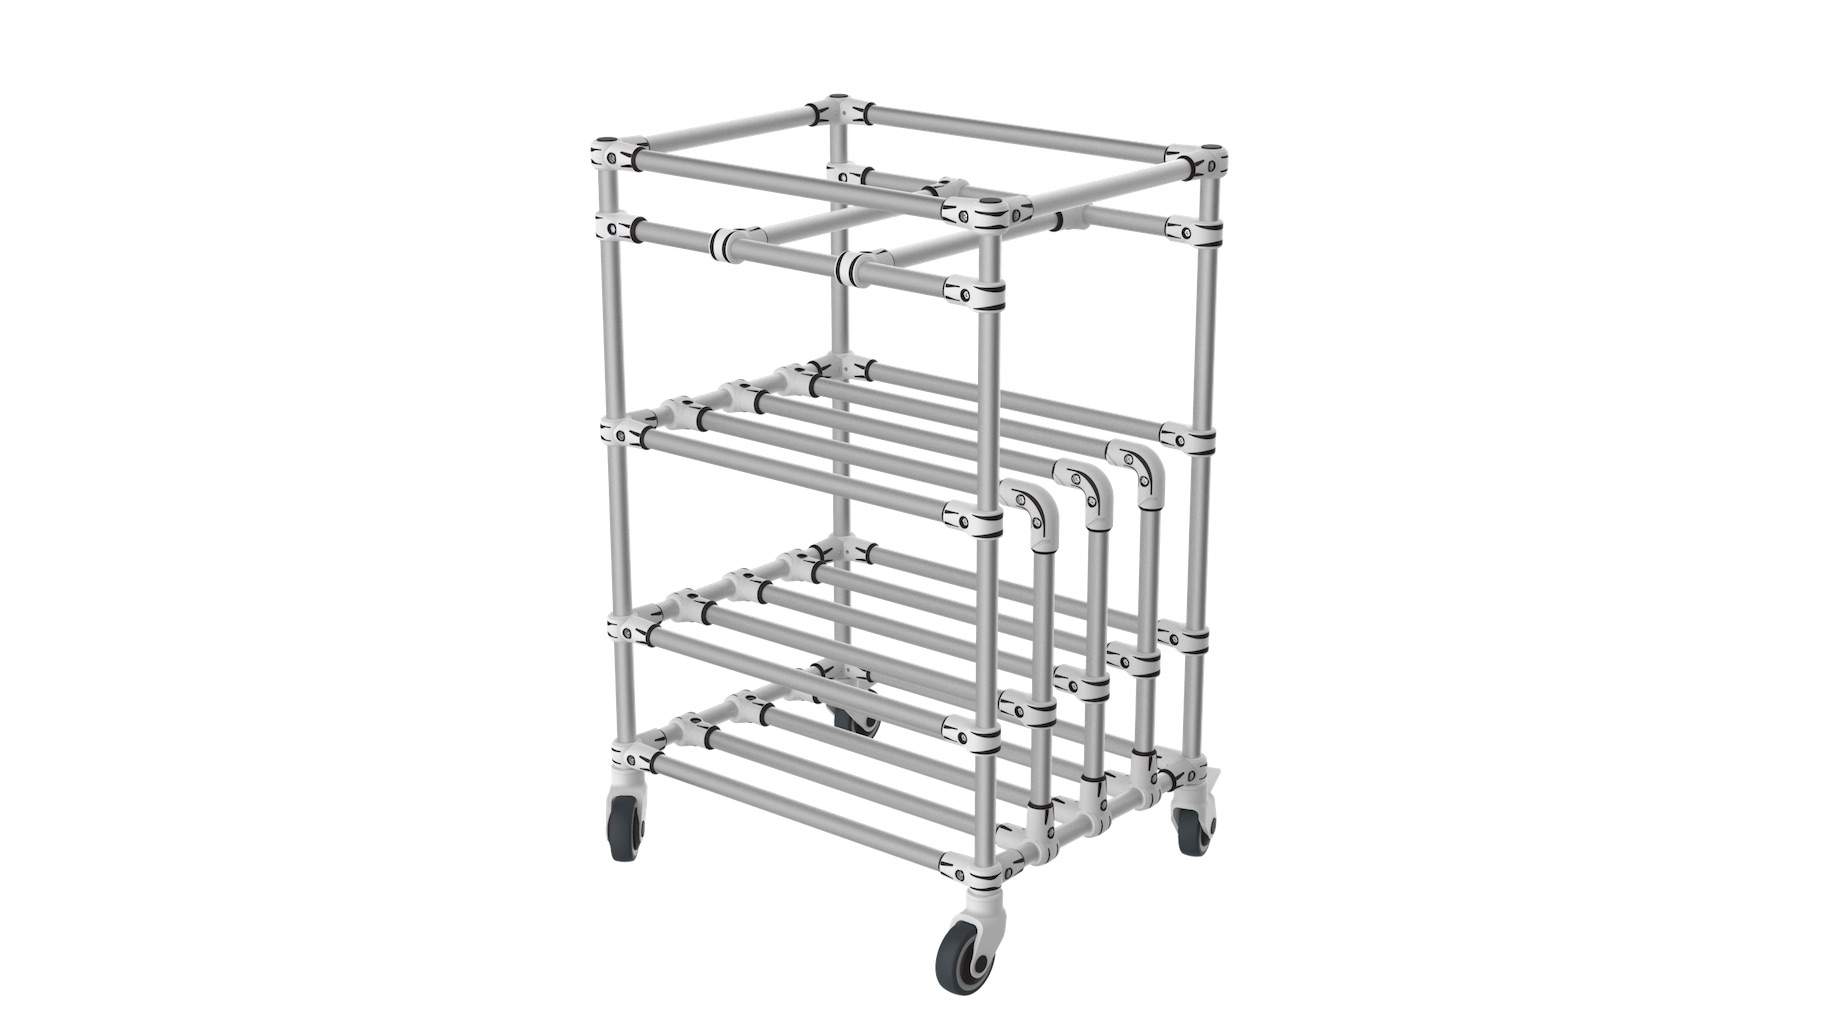 Electronic - Double storage trolley: vertical and horizontal. It is composed of a box / bin location on the top and a compartment for vertical storage below. A very versatile solution.